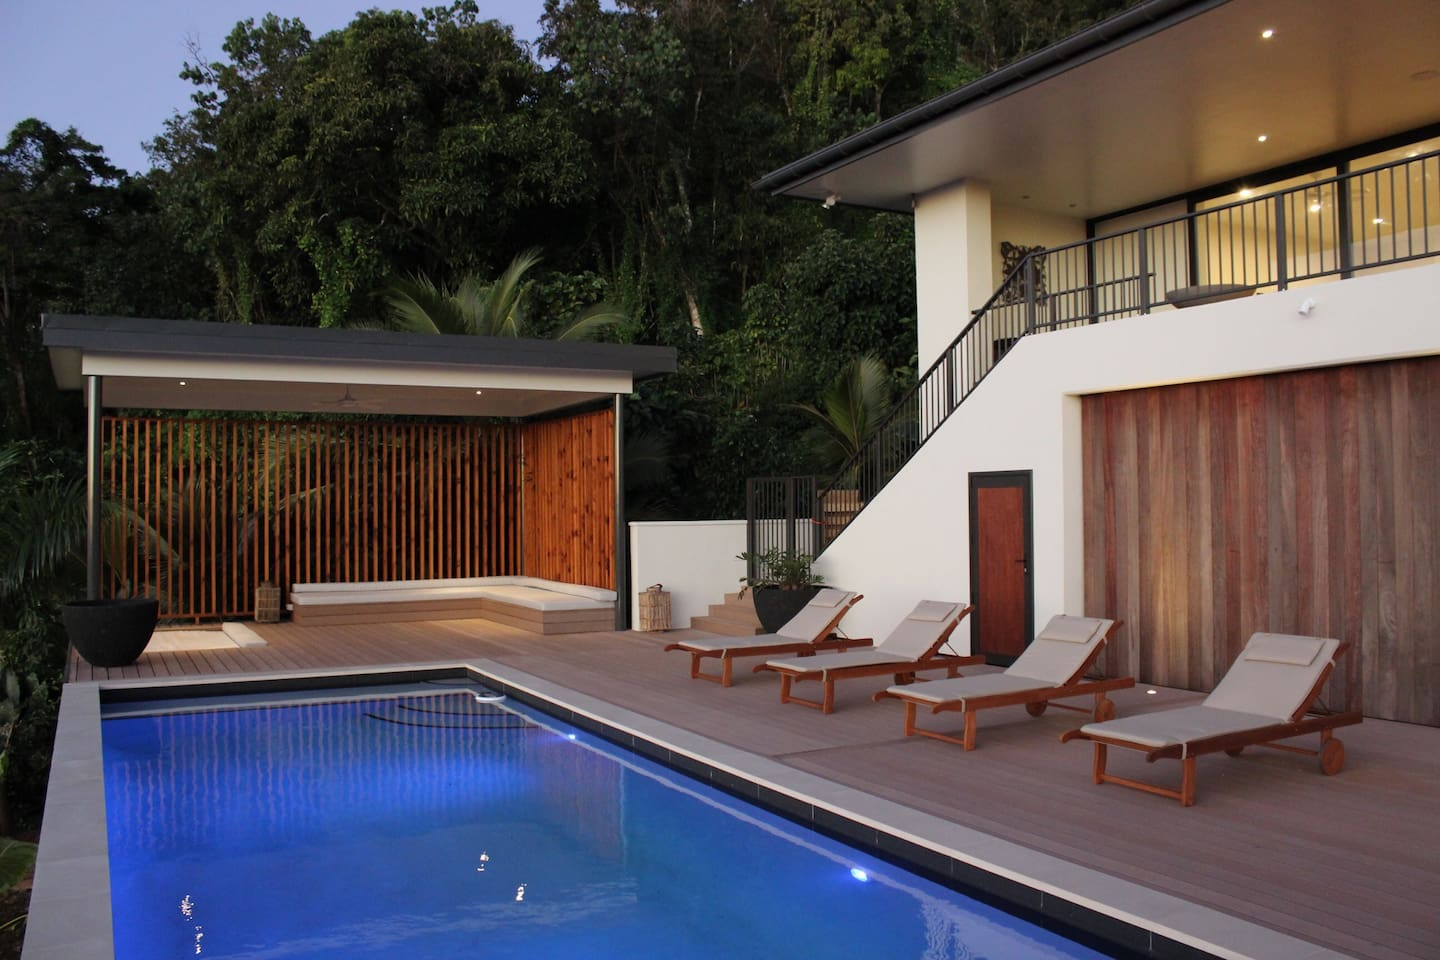 Huge pool, cabana and deck area. Fenced to prevent kids unintended external access.